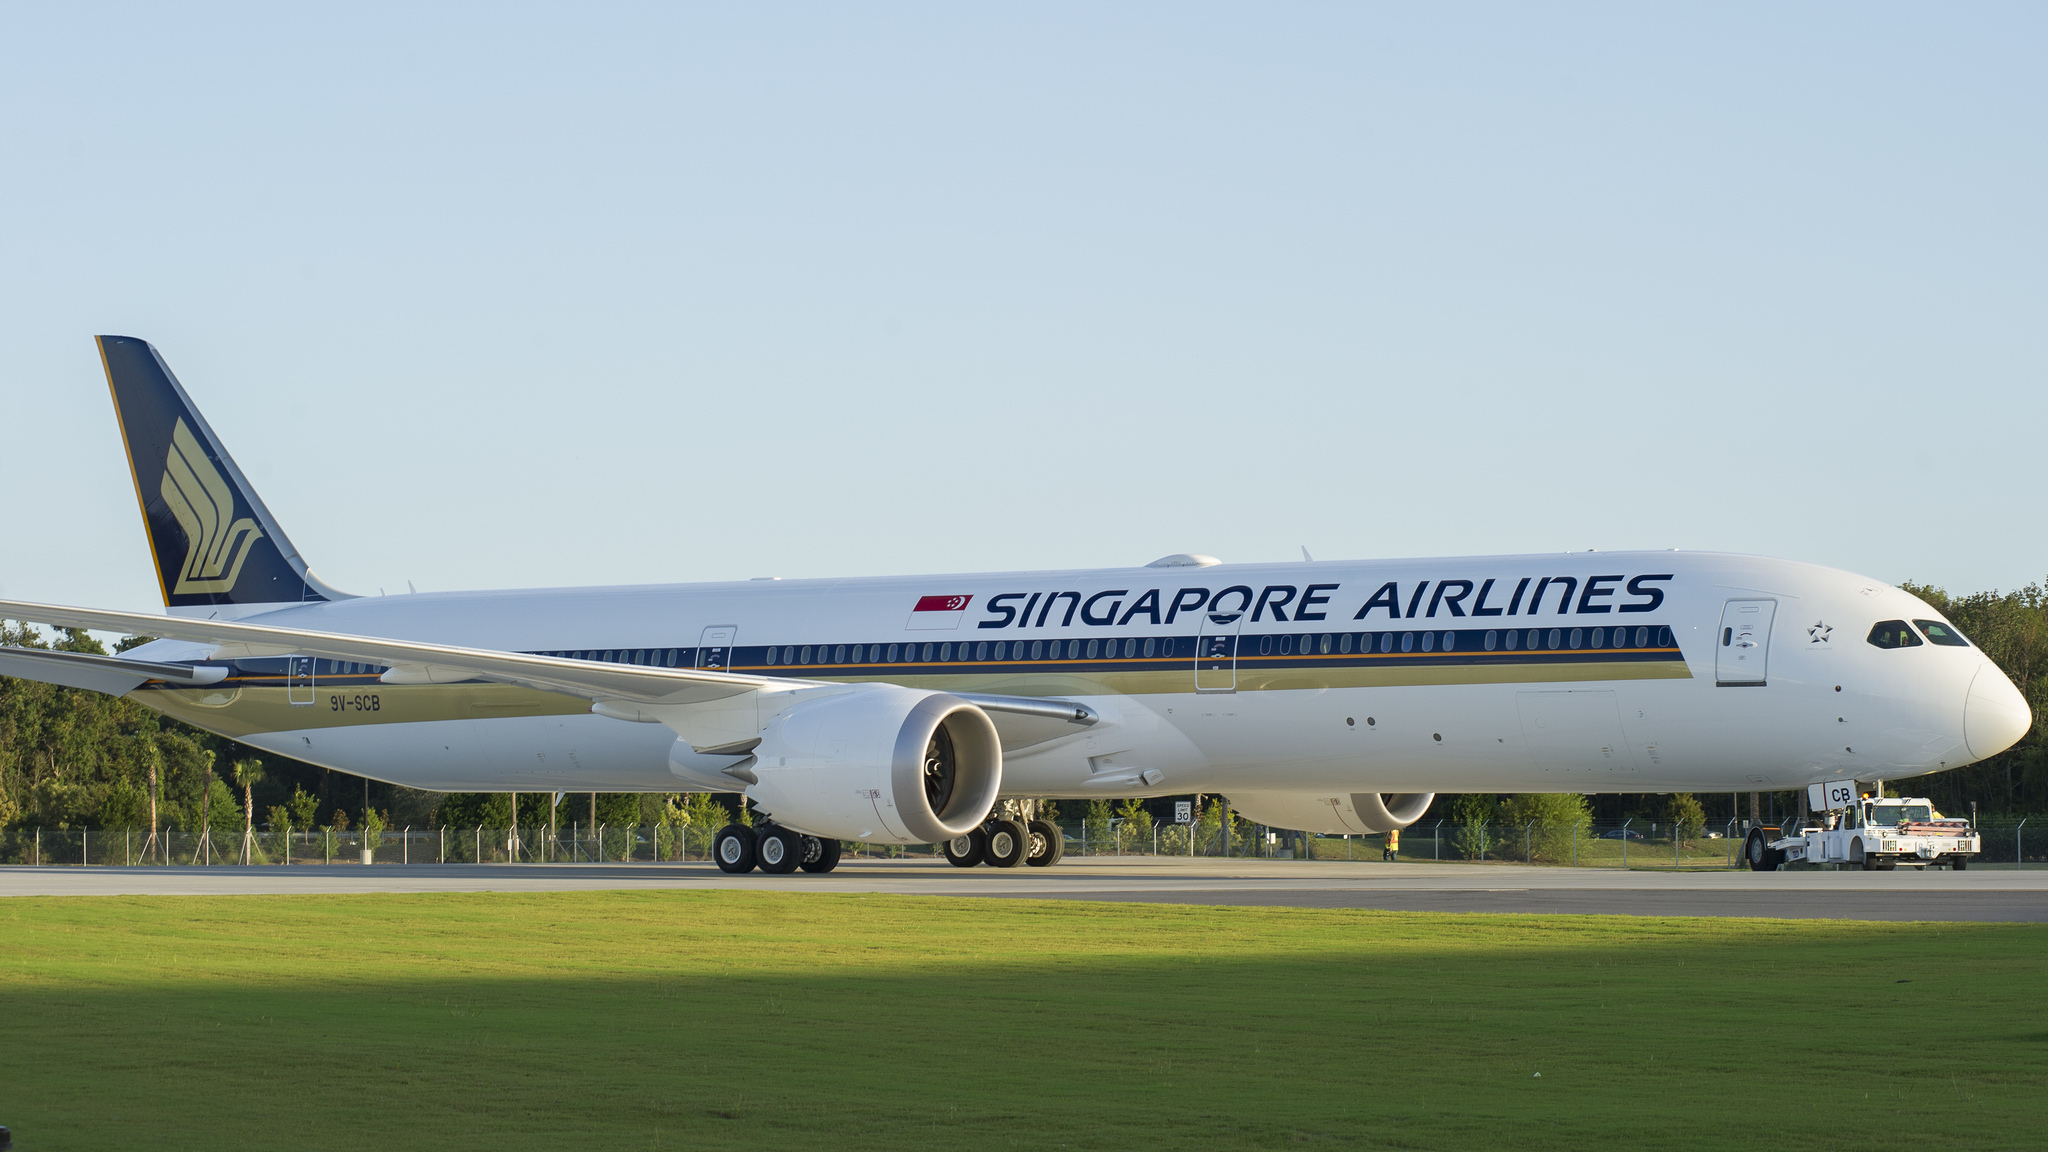 Rolls Royce delivers to Singapore Airlines